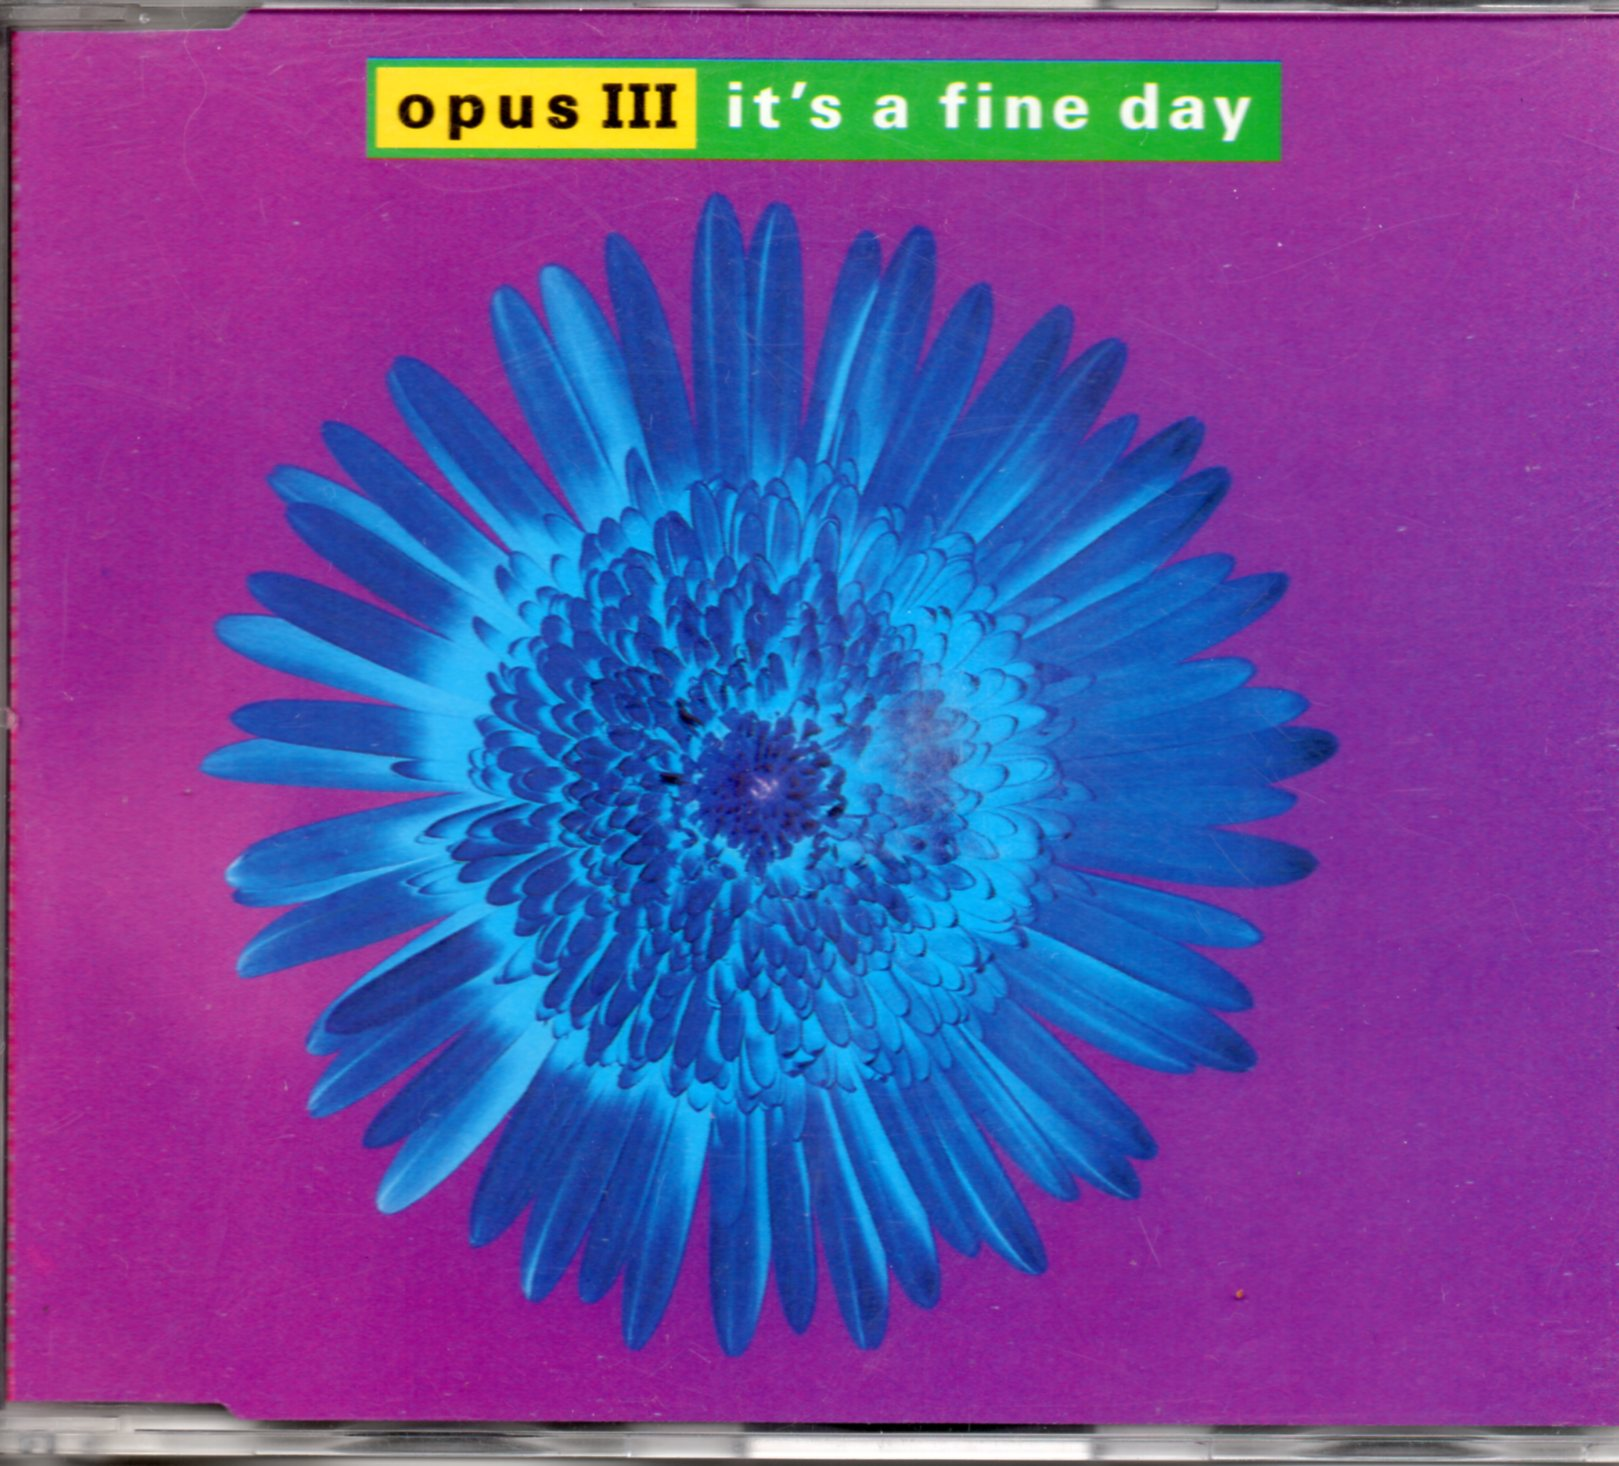 OPUS III - PWL - It's a fine day 4-track Jewel Case - CD Maxi